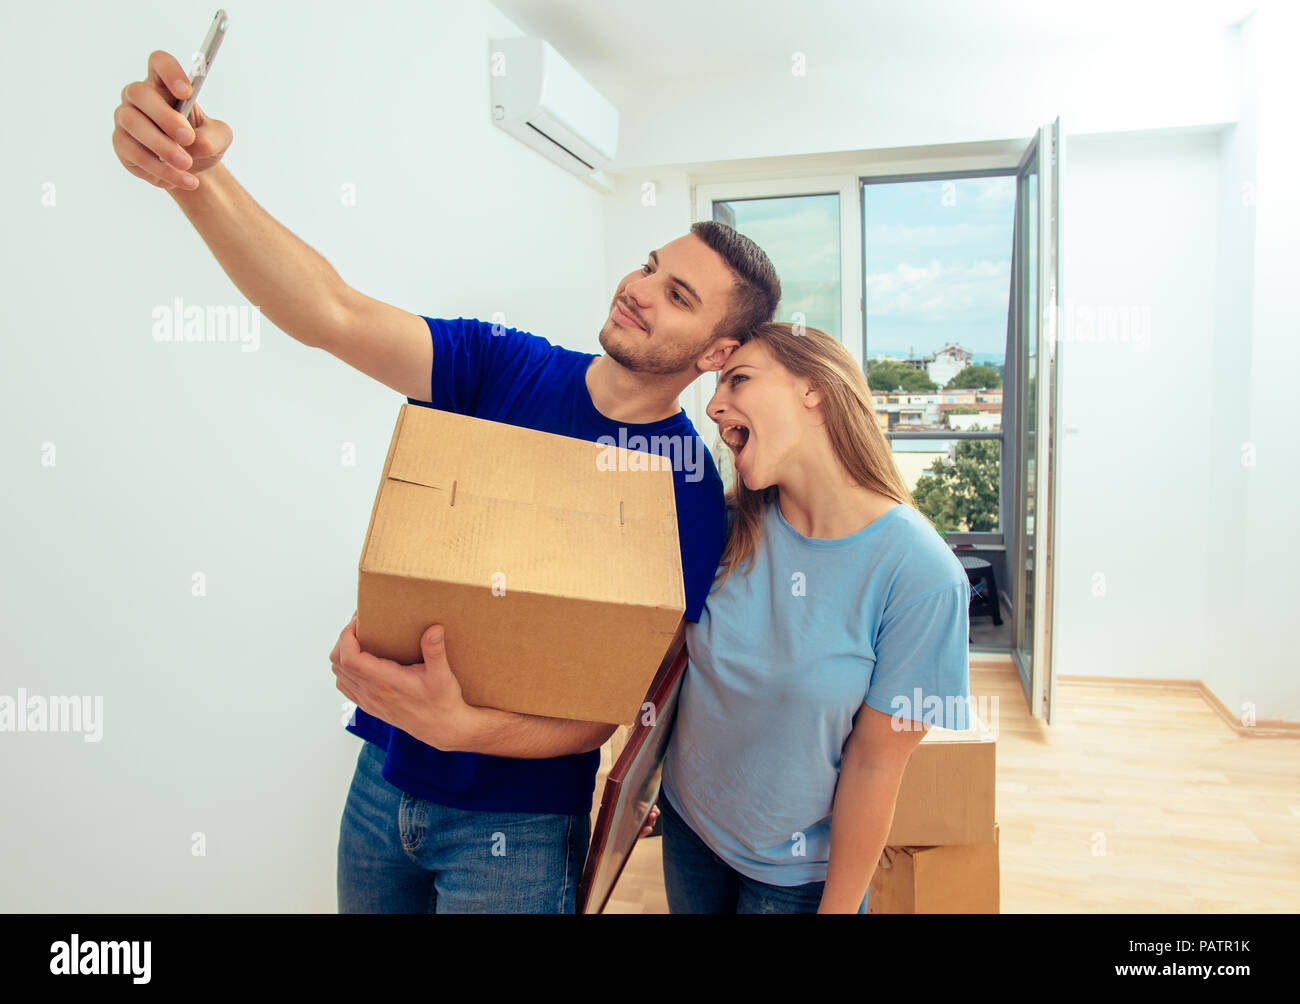 48ddf6ef2064 Handsome man make selfie with cell phone while holding cardboard box in new  home image jpg